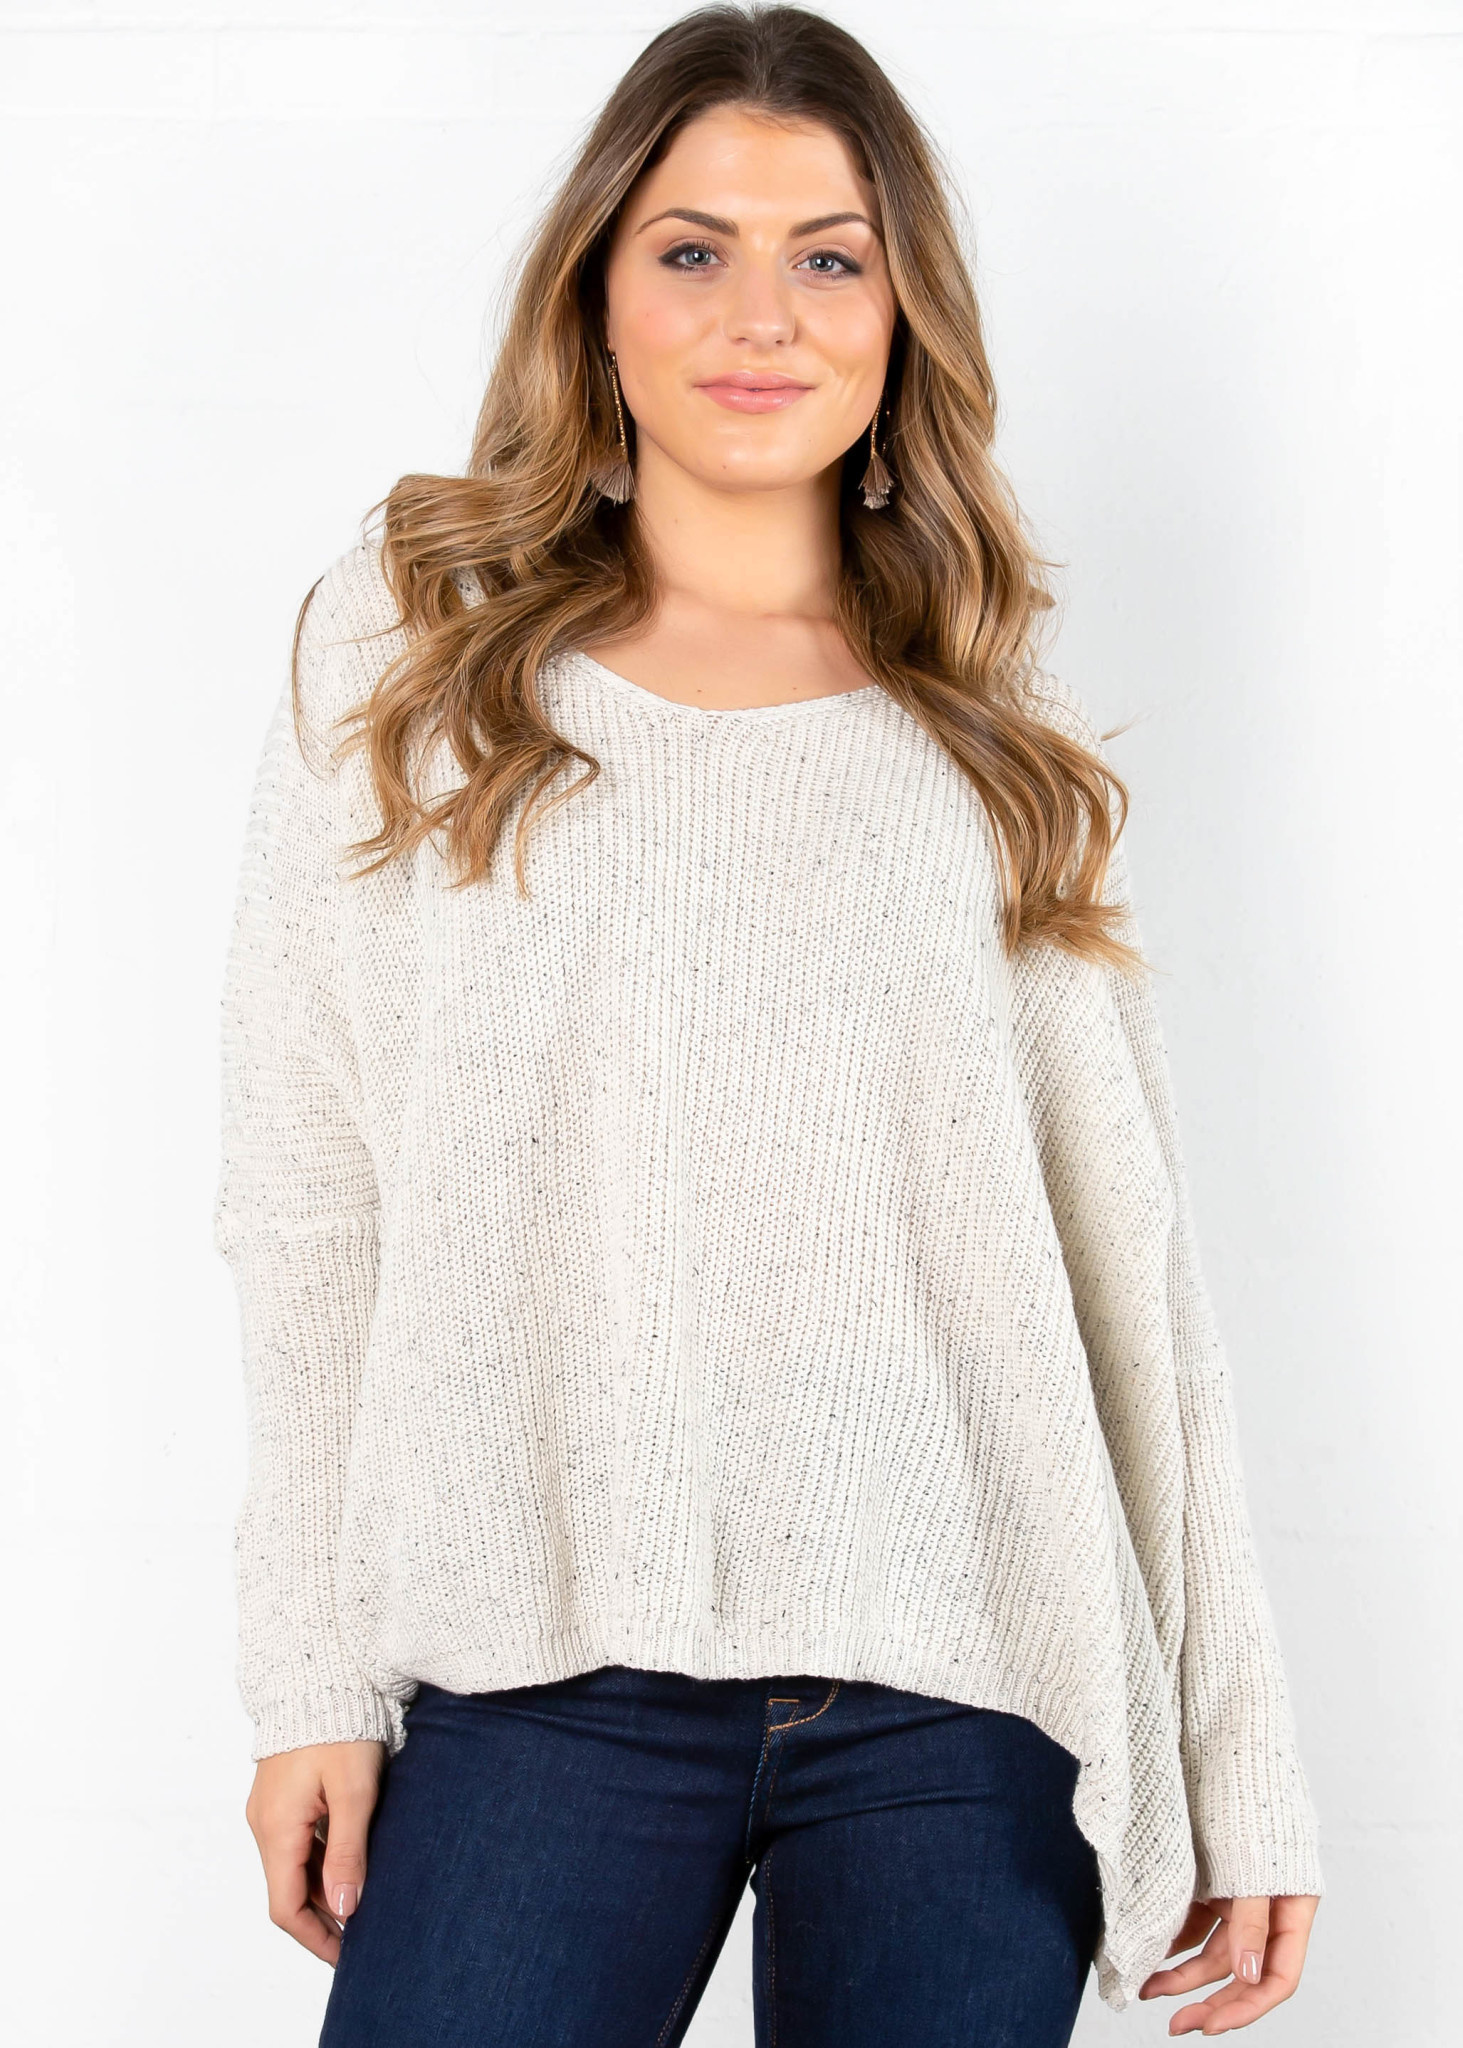 WISH FOR BLISS SPECKLED SWEATER